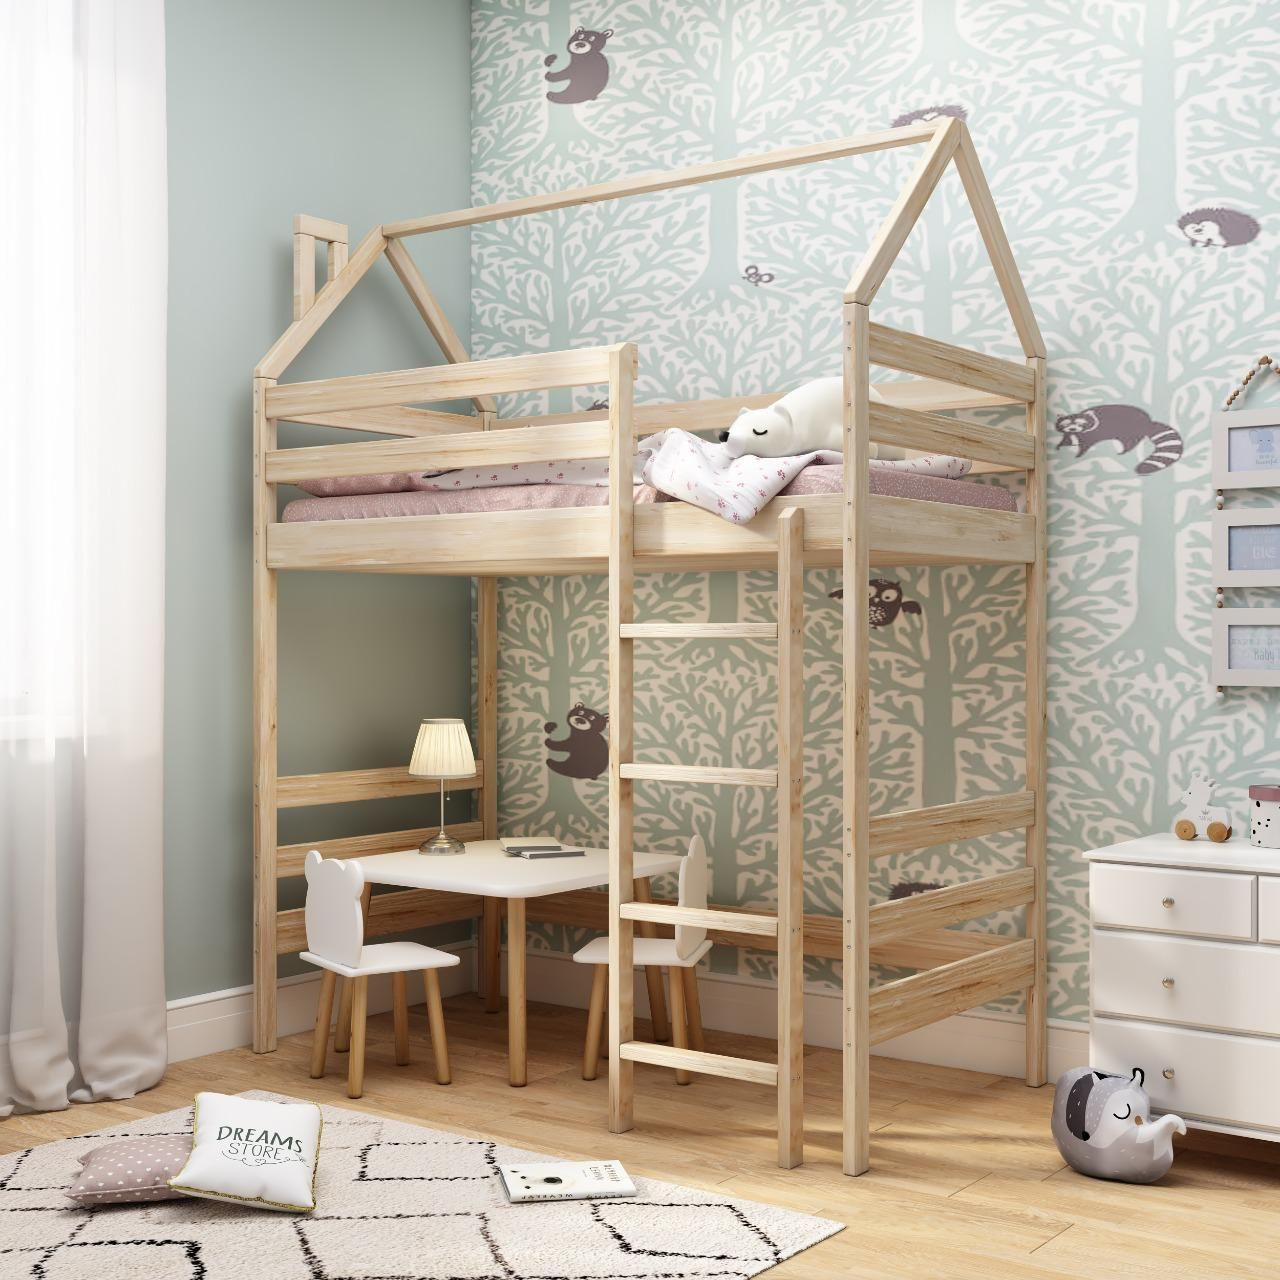 Dreams Store / Loft bed in natural color